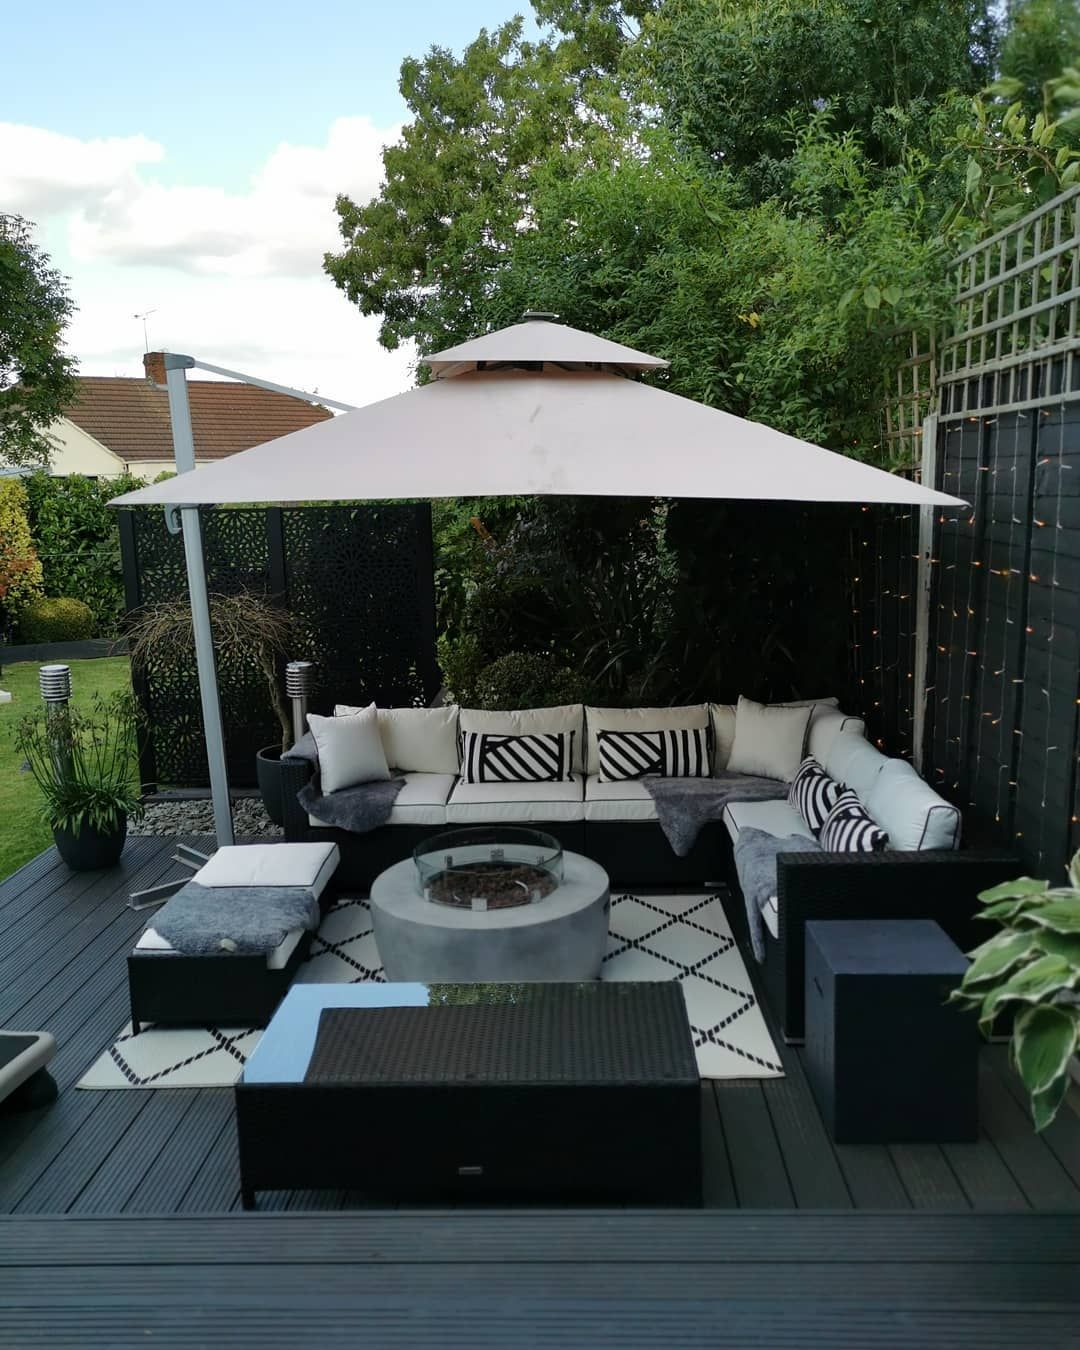 No Place Like Home On Instagram One More Garden Post Before We Creep Into October And Leave Summer Rattan Garden Corner Sofa Corner Sofa Set Garden Cushions